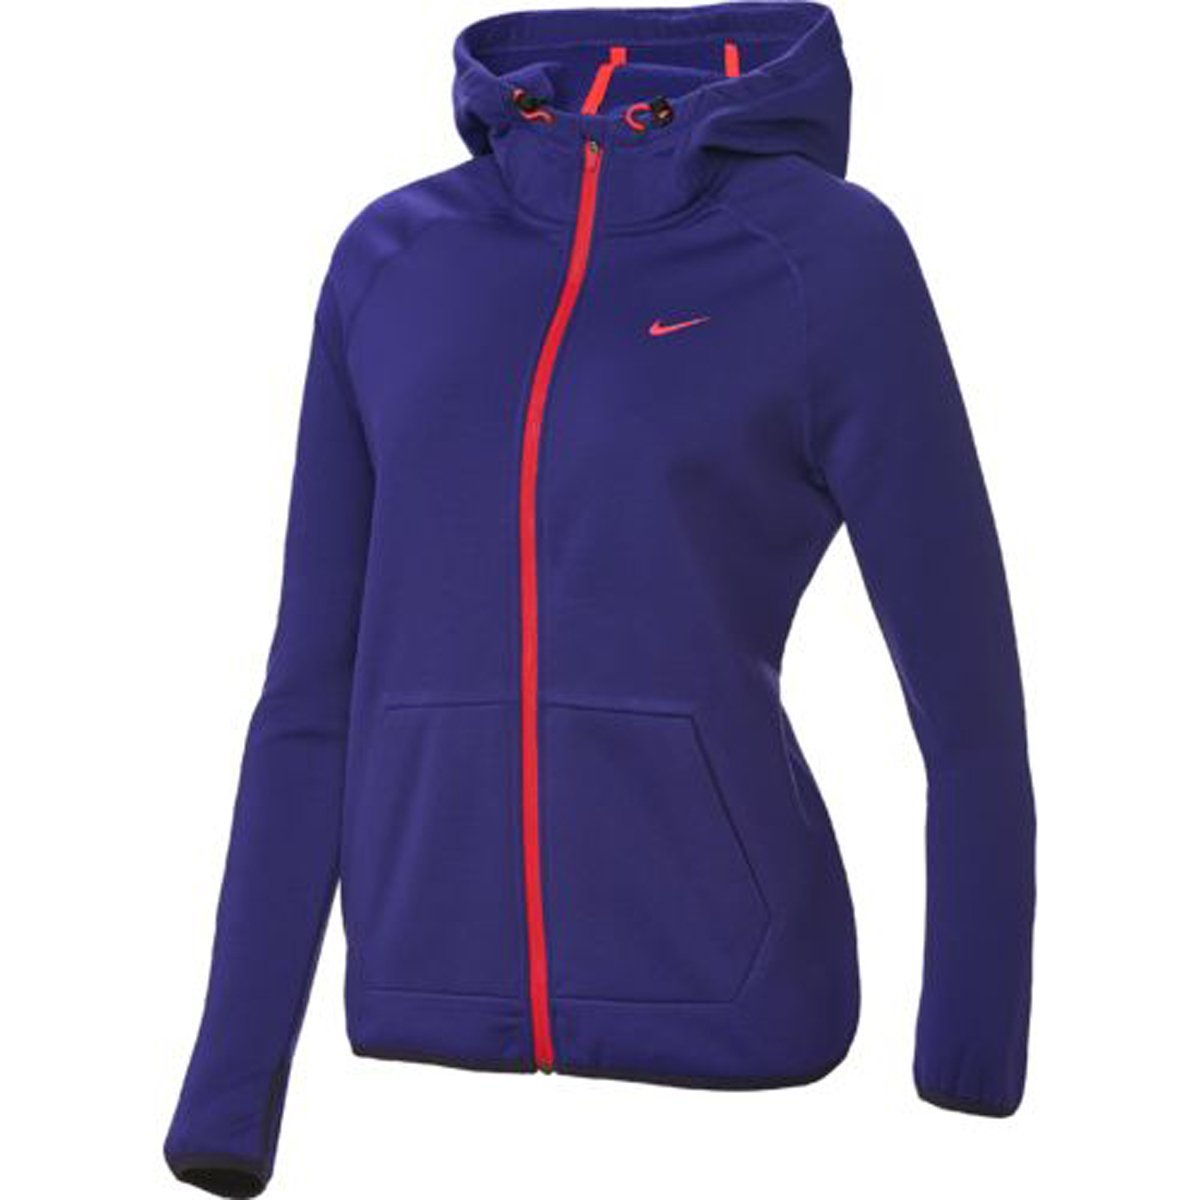 Nike Women's All Time Tech Full Zip Hoodie (Large, Court Purple/Cave Purple/Hyper Punch)